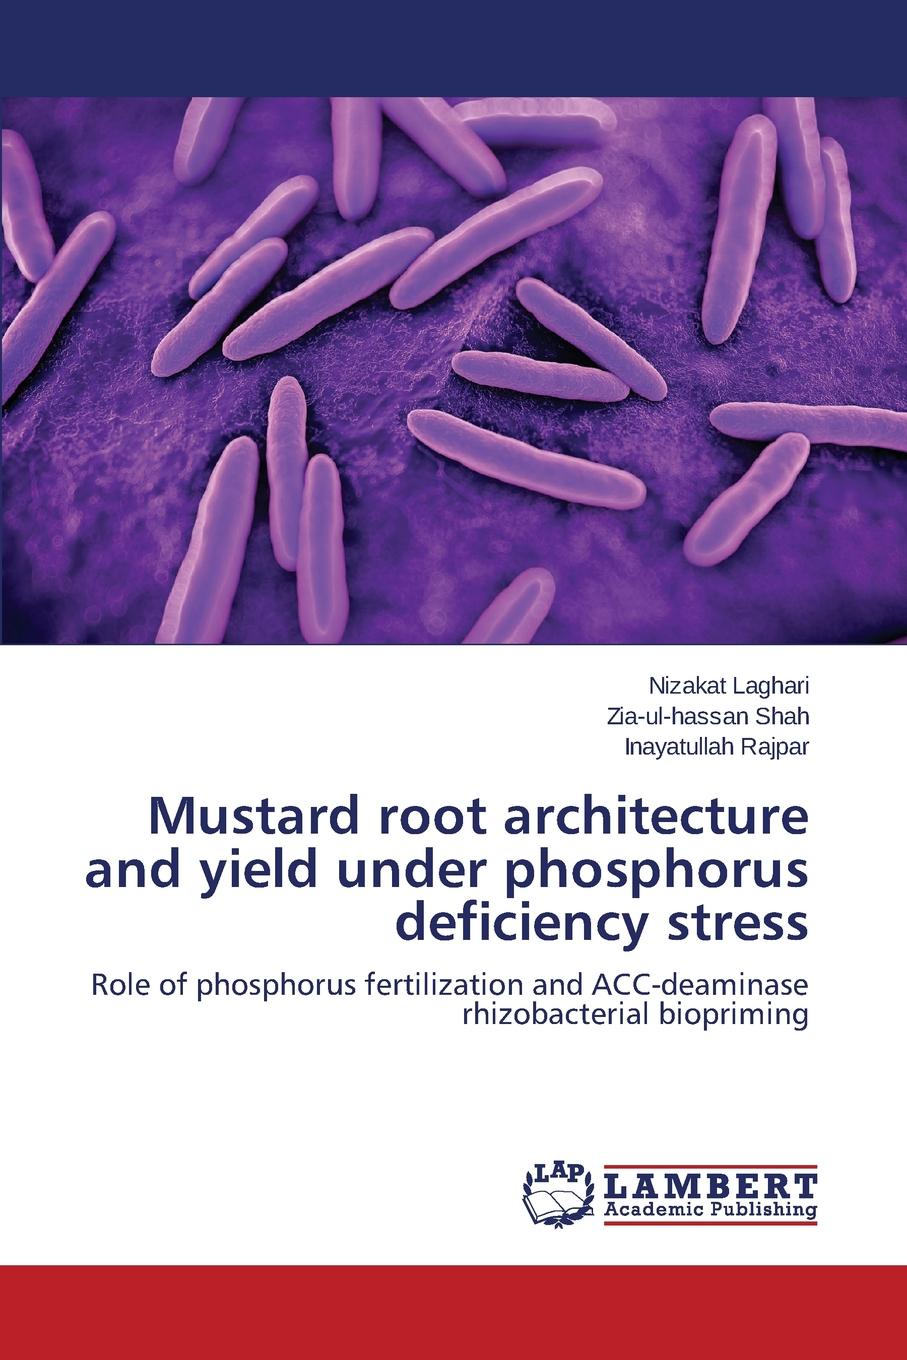 Laghari Nizakat, Shah Zia-ul-hassan, Rajpar Inayatullah Mustard root architecture and yield under phosphorus deficiency stress reza ebrahimi gaskarei mineral nutrition of sunflower plants in saline medium